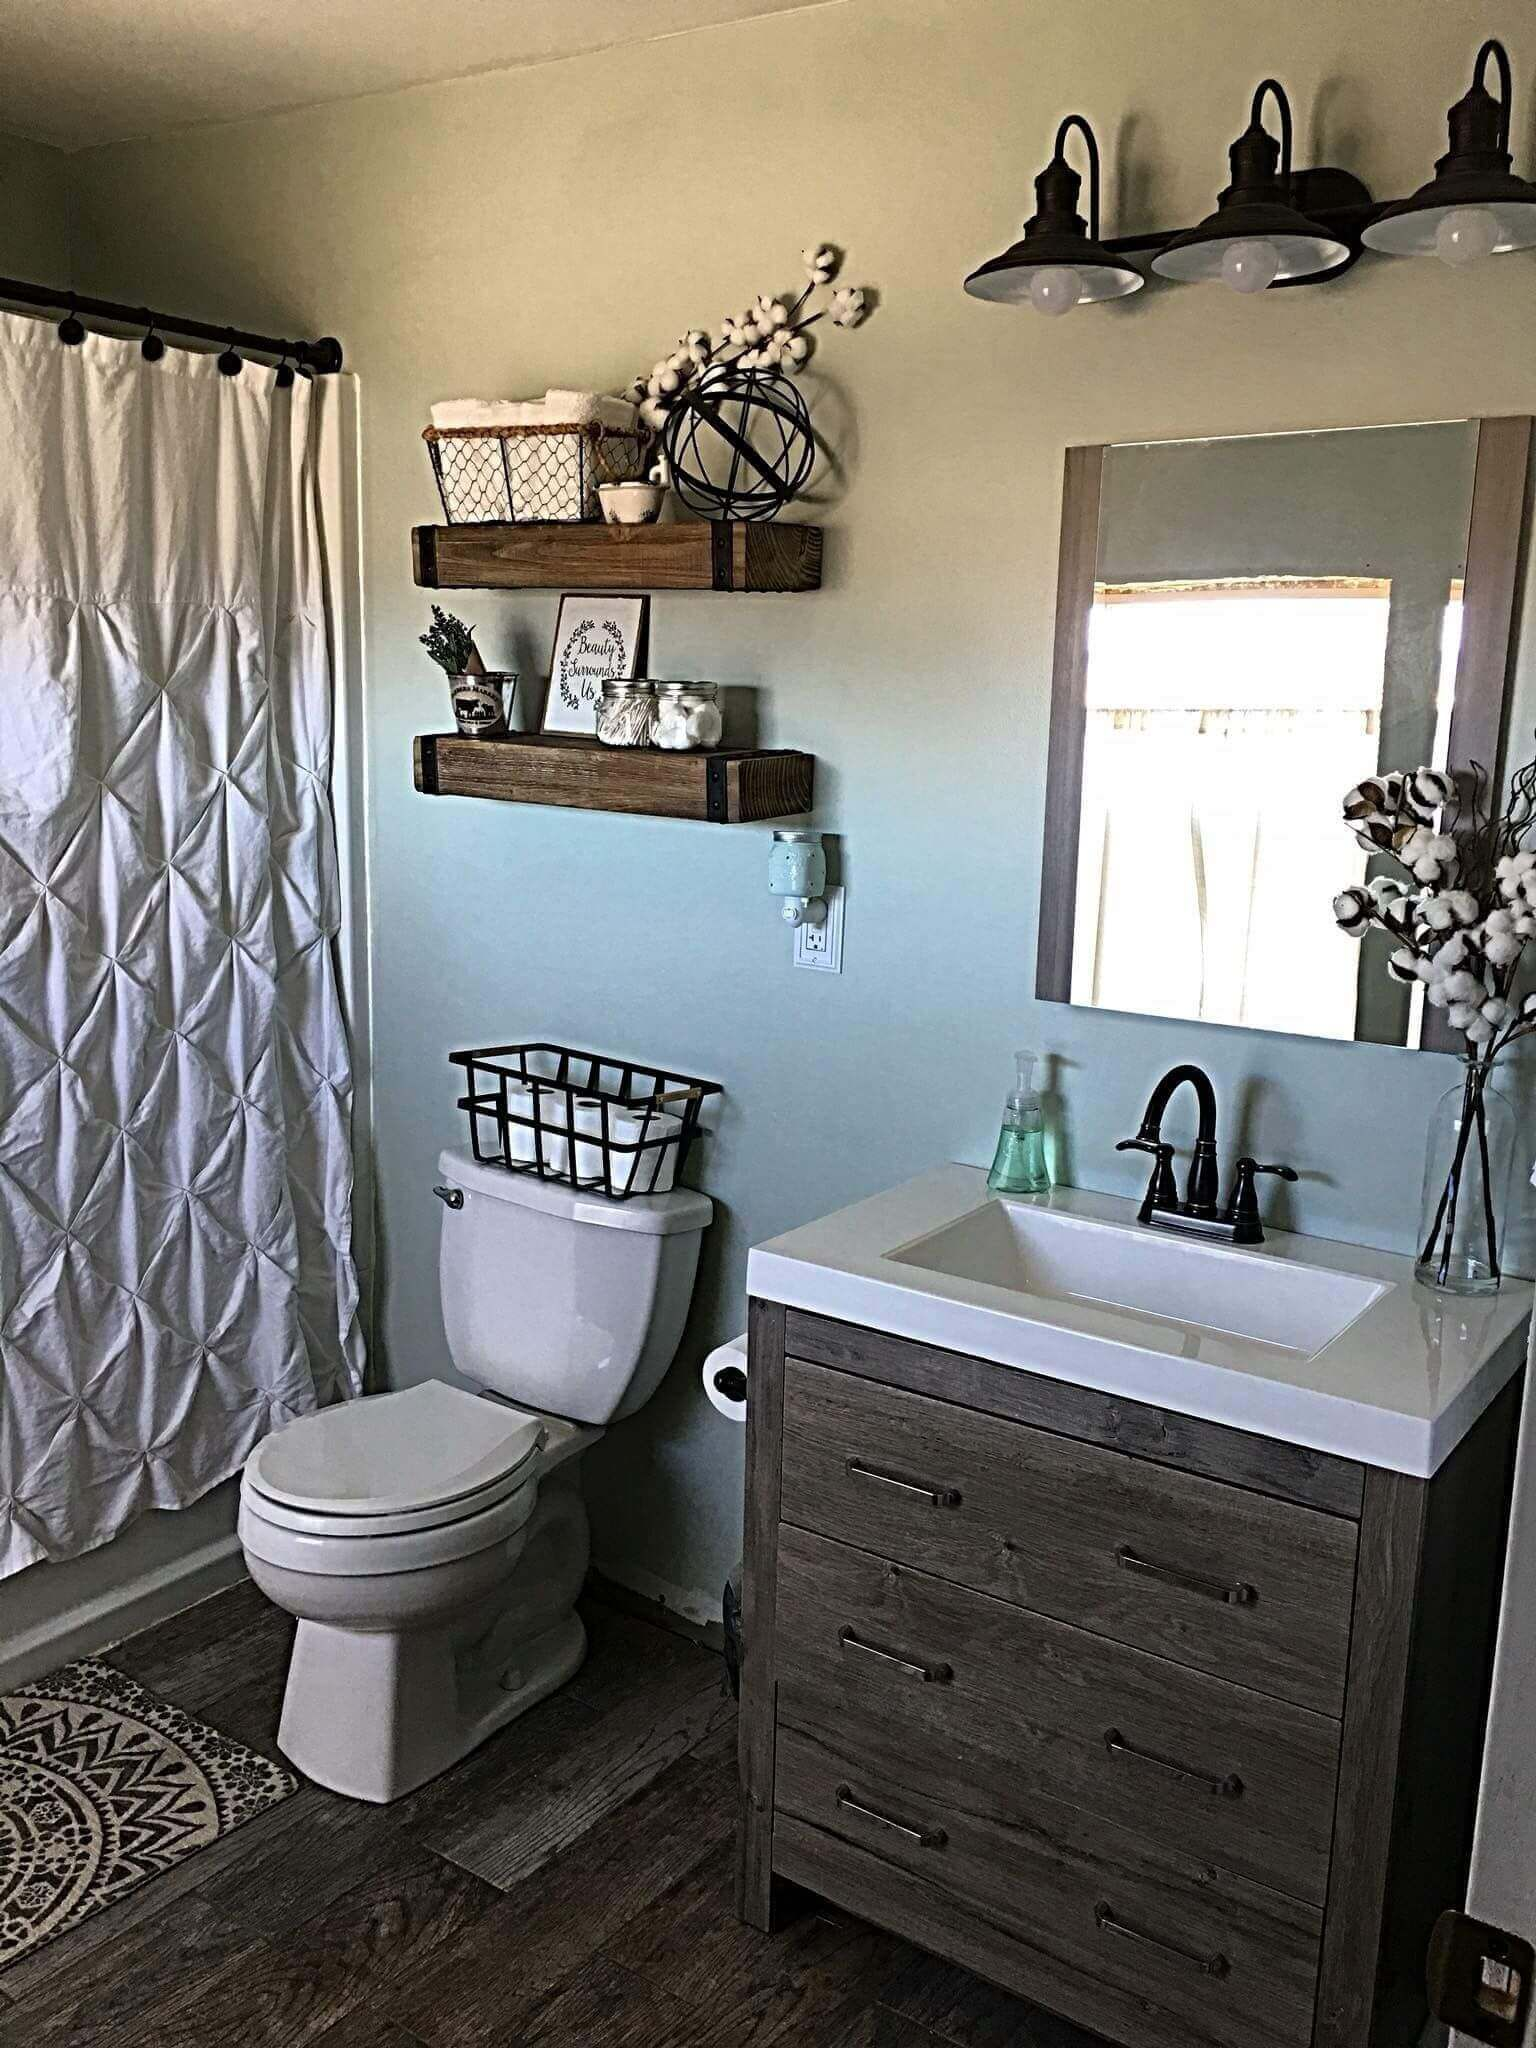 29 Small Guest Bathroom Ideas To Wow Your Visitors Bathroom Makeovers On A Budget Small Master Bathroom Bathroom Design Small